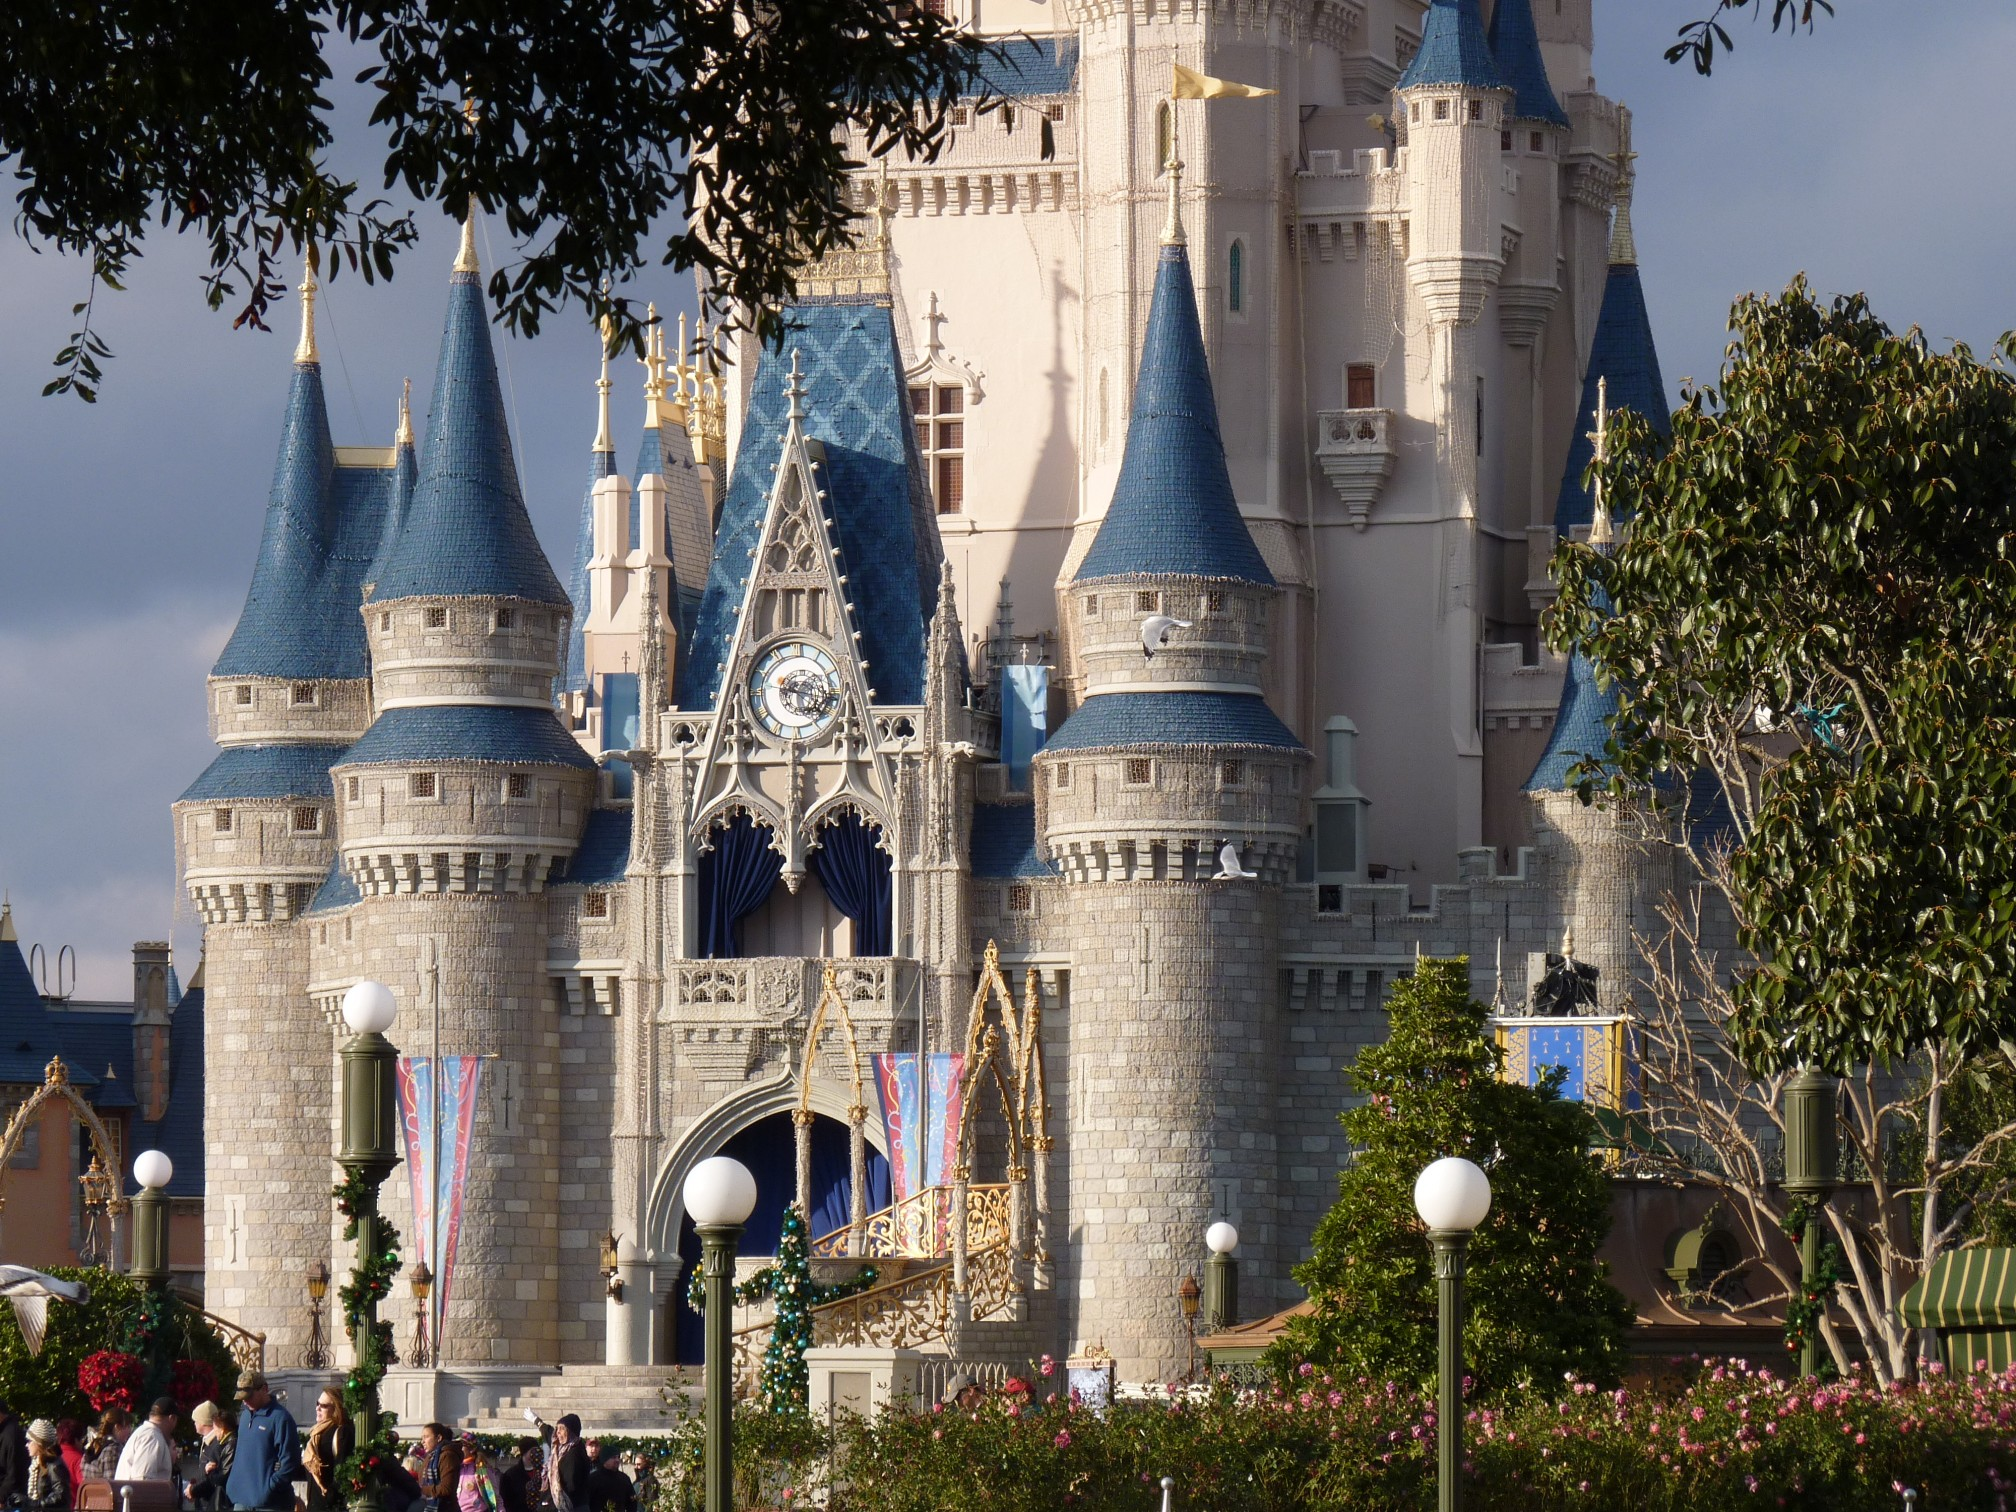 Jud's Disney Picture of the Day: CASTLE EAST